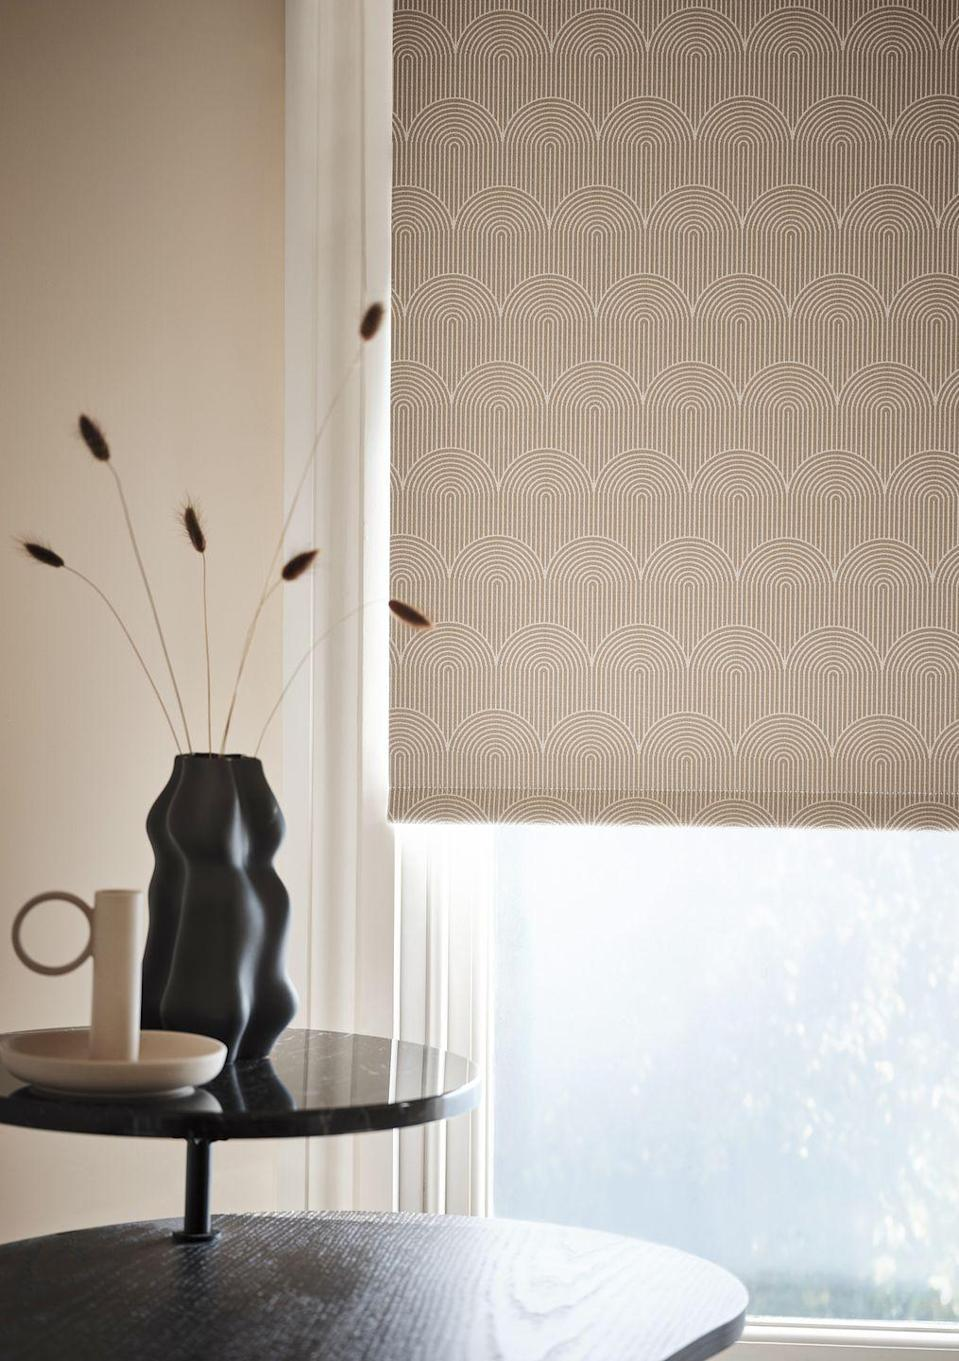 "<p>Bring tranquility and calmness to your room with Pendulum Demerara. This fabric features a stylish semi-circle retro design saturated in a dusky pink shade. Perfect for contemporary spaces, the geo pattern repeat gives an illusion of beautiful layers.<br></p><p>Better still, Pendulum Demerara is actually a blackout print, so if you want a great night's sleep, it's perfect for keeping the light out in your bedroom.</p><p><a class=""link rapid-noclick-resp"" href=""https://www.hillarys.co.uk/products/pendulum-demerara-roller-blind/"" rel=""nofollow noopener"" target=""_blank"" data-ylk=""slk:Order a sample and request an appointment"">Order a sample and request an appointment</a><strong><br><br>Like this article? <a href=""https://hearst.emsecure.net/optiext/cr.aspx?ID=DR9UY9ko5HvLAHeexA2ngSL3t49WvQXSjQZAAXe9gg0Rhtz8pxOWix3TXd_WRbE3fnbQEBkC%2BEWZDx"" rel=""nofollow noopener"" target=""_blank"" data-ylk=""slk:Sign up to our newsletter"" class=""link rapid-noclick-resp"">Sign up to our newsletter</a> to get more articles like this delivered straight to your inbox.</strong></p><p><a class=""link rapid-noclick-resp"" href=""https://hearst.emsecure.net/optiext/cr.aspx?ID=DR9UY9ko5HvLAHeexA2ngSL3t49WvQXSjQZAAXe9gg0Rhtz8pxOWix3TXd_WRbE3fnbQEBkC%2BEWZDx"" rel=""nofollow noopener"" target=""_blank"" data-ylk=""slk:SIGN UP"">SIGN UP</a></p><p>Love what you're reading? Enjoy <a href=""https://go.redirectingat.com?id=127X1599956&url=https%3A%2F%2Fwww.hearstmagazines.co.uk%2Fhb%2Fhouse-beautiful-magazine-subscription-website&sref=https%3A%2F%2Fwww.housebeautiful.com%2Fuk%2Fhouse-beautiful-collections%2Fg35979144%2Fhillarys-roller-blinds-collection%2F"" rel=""nofollow noopener"" target=""_blank"" data-ylk=""slk:House Beautiful magazine"" class=""link rapid-noclick-resp"">House Beautiful magazine</a> delivered straight to your door every month with Free UK delivery. Buy direct from the publisher for the lowest price and never miss an issue!</p><p><a class=""link rapid-noclick-resp"" href=""https://go.redirectingat.com?id=127X1599956&url=https%3A%2F%2Fwww.hearstmagazines.co.uk%2Fhb%2Fhouse-beautiful-magazine-subscription-website&sref=https%3A%2F%2Fwww.housebeautiful.com%2Fuk%2Fhouse-beautiful-collections%2Fg35979144%2Fhillarys-roller-blinds-collection%2F"" rel=""nofollow noopener"" target=""_blank"" data-ylk=""slk:SUBSCRIBE"">SUBSCRIBE</a></p>"